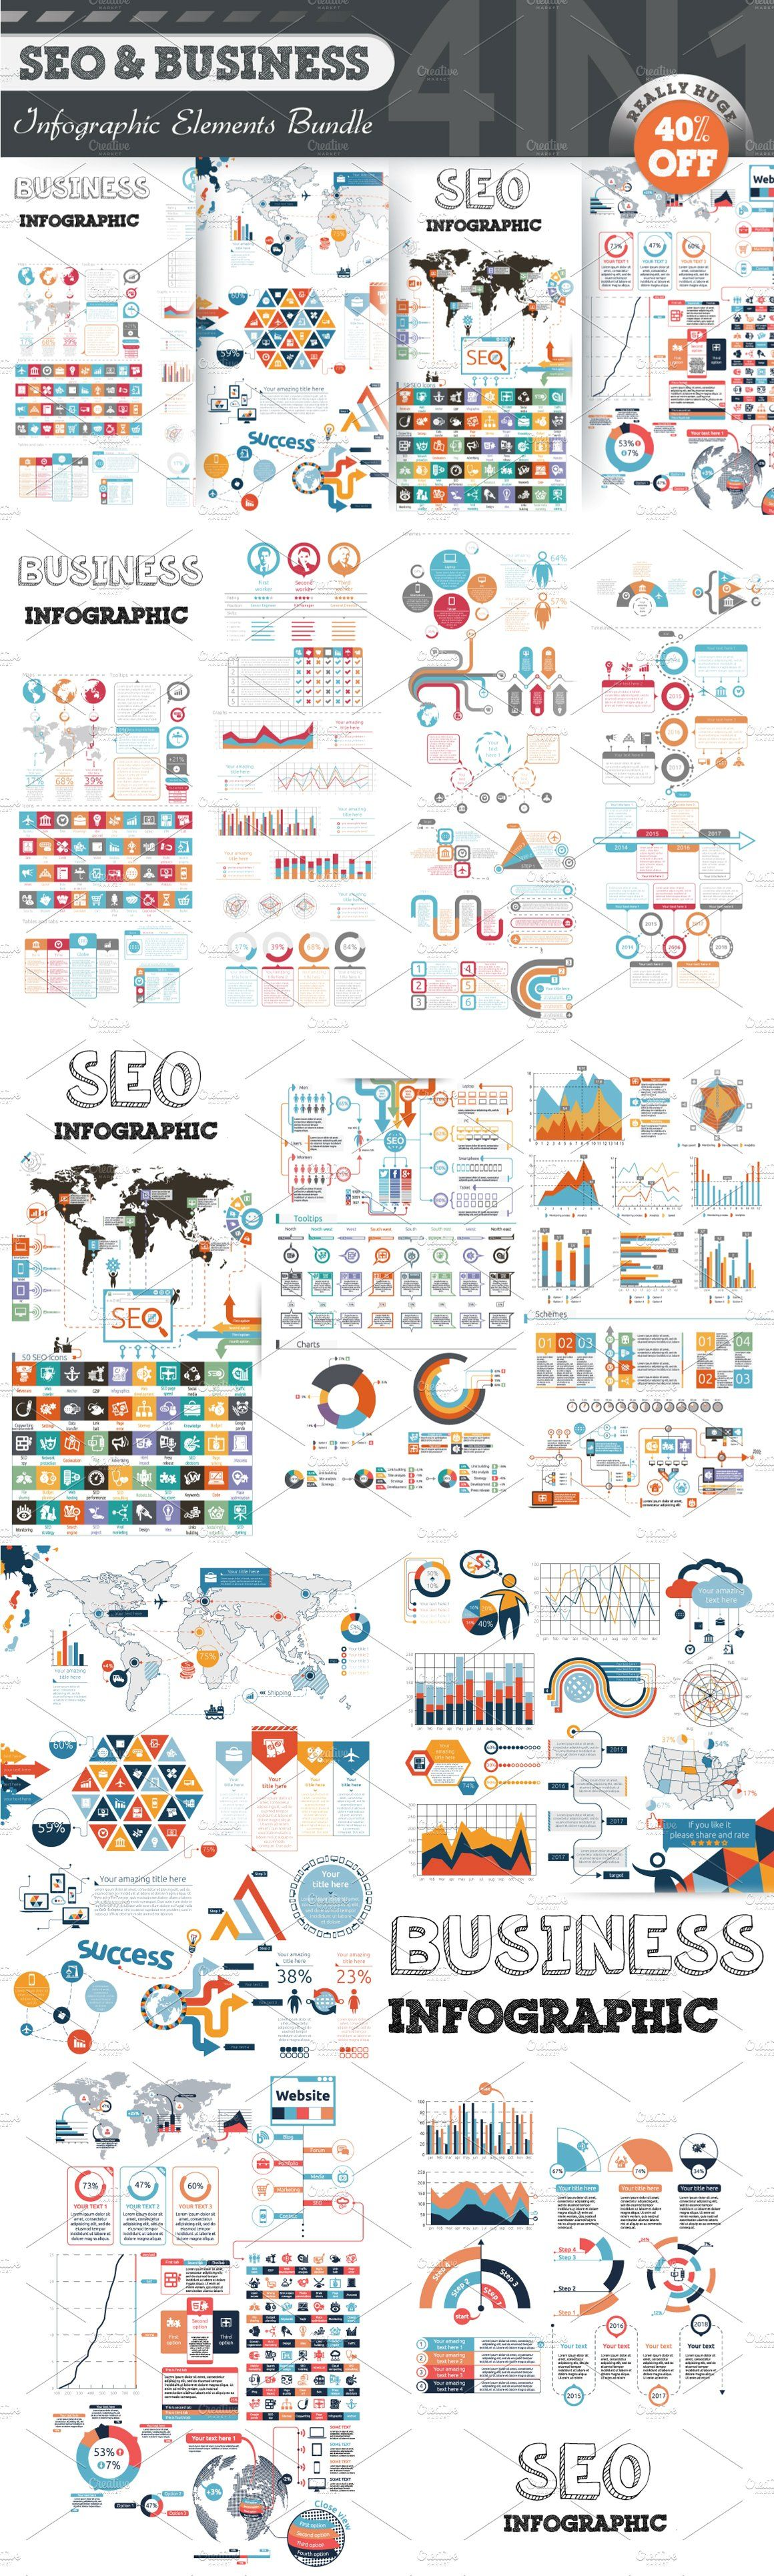 40% OFF Infographic Bundle by Infographic Paradise